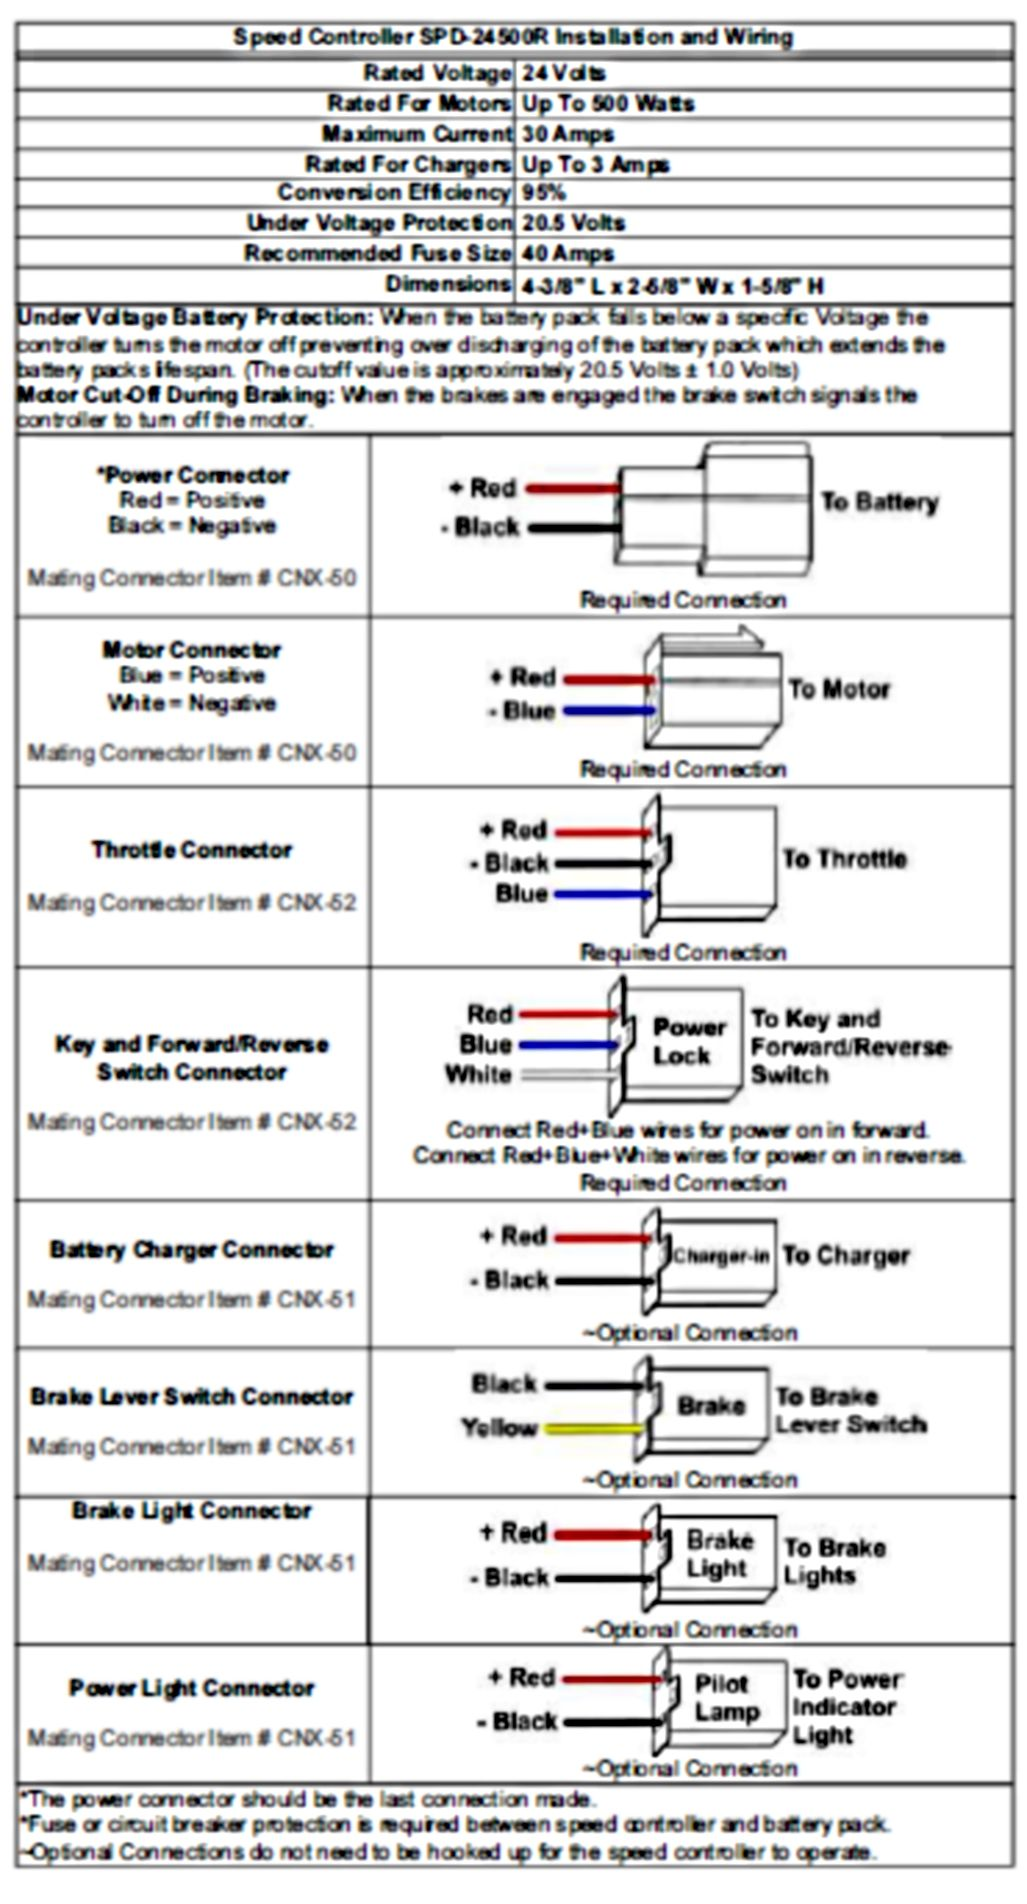 Baja Electric Scooter Wiring Diagram on electric scooter drive system, electric scooters 30 mph, electric scooter specifications, electric scooter engine, electric scooter brakes, electric scooter suspension, gas scooter diagrams, electric window wiring diagram, electric scooter motor, electric scooter parts, electric scooter manuals, electric scooter schematics, electric scooter drawings, electric scooter assembly, electric scooters for adults, electric scooter repair, electric skateboard diagram, pinout diagrams, electric scooter frame,